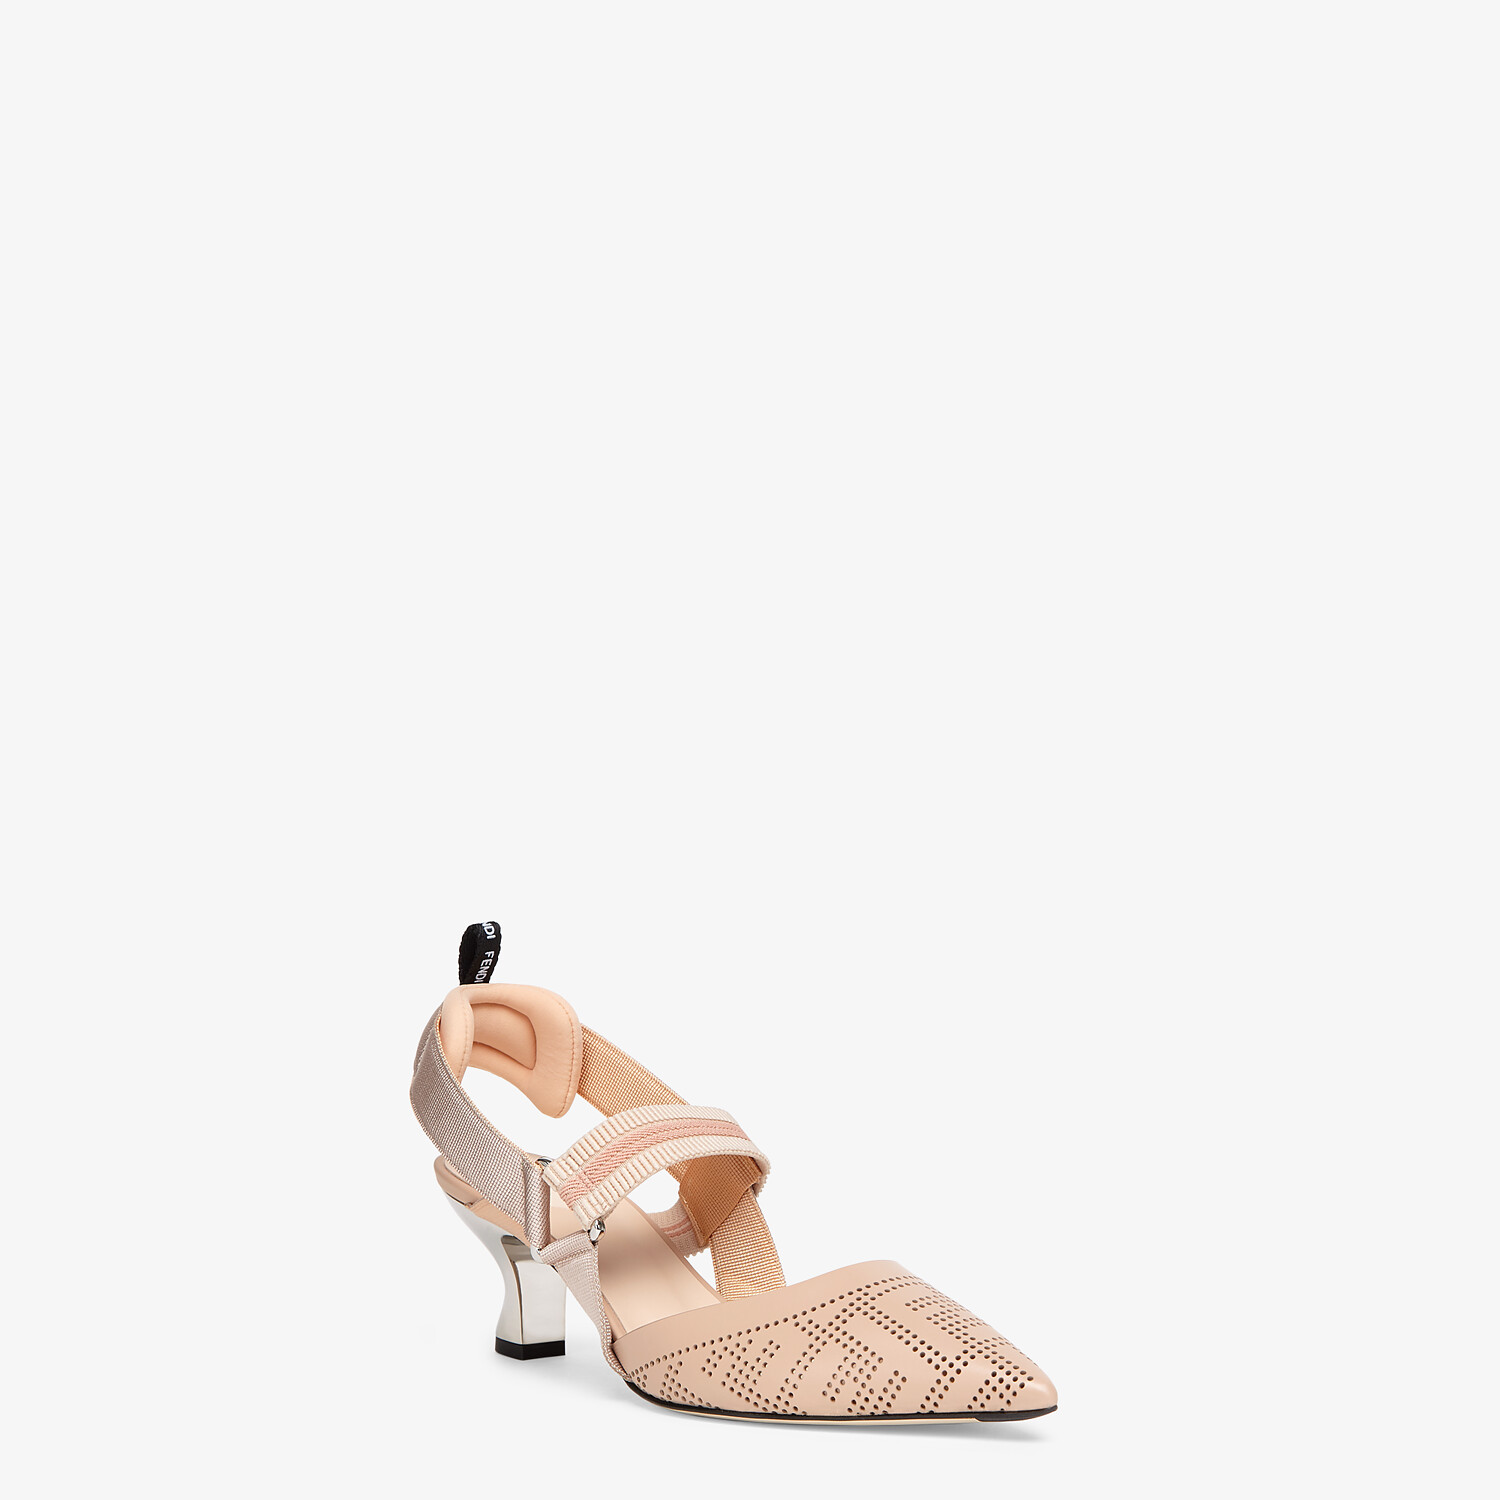 FENDI SLINGBACKS - Pink leather Colibrì slingbacks - view 2 detail